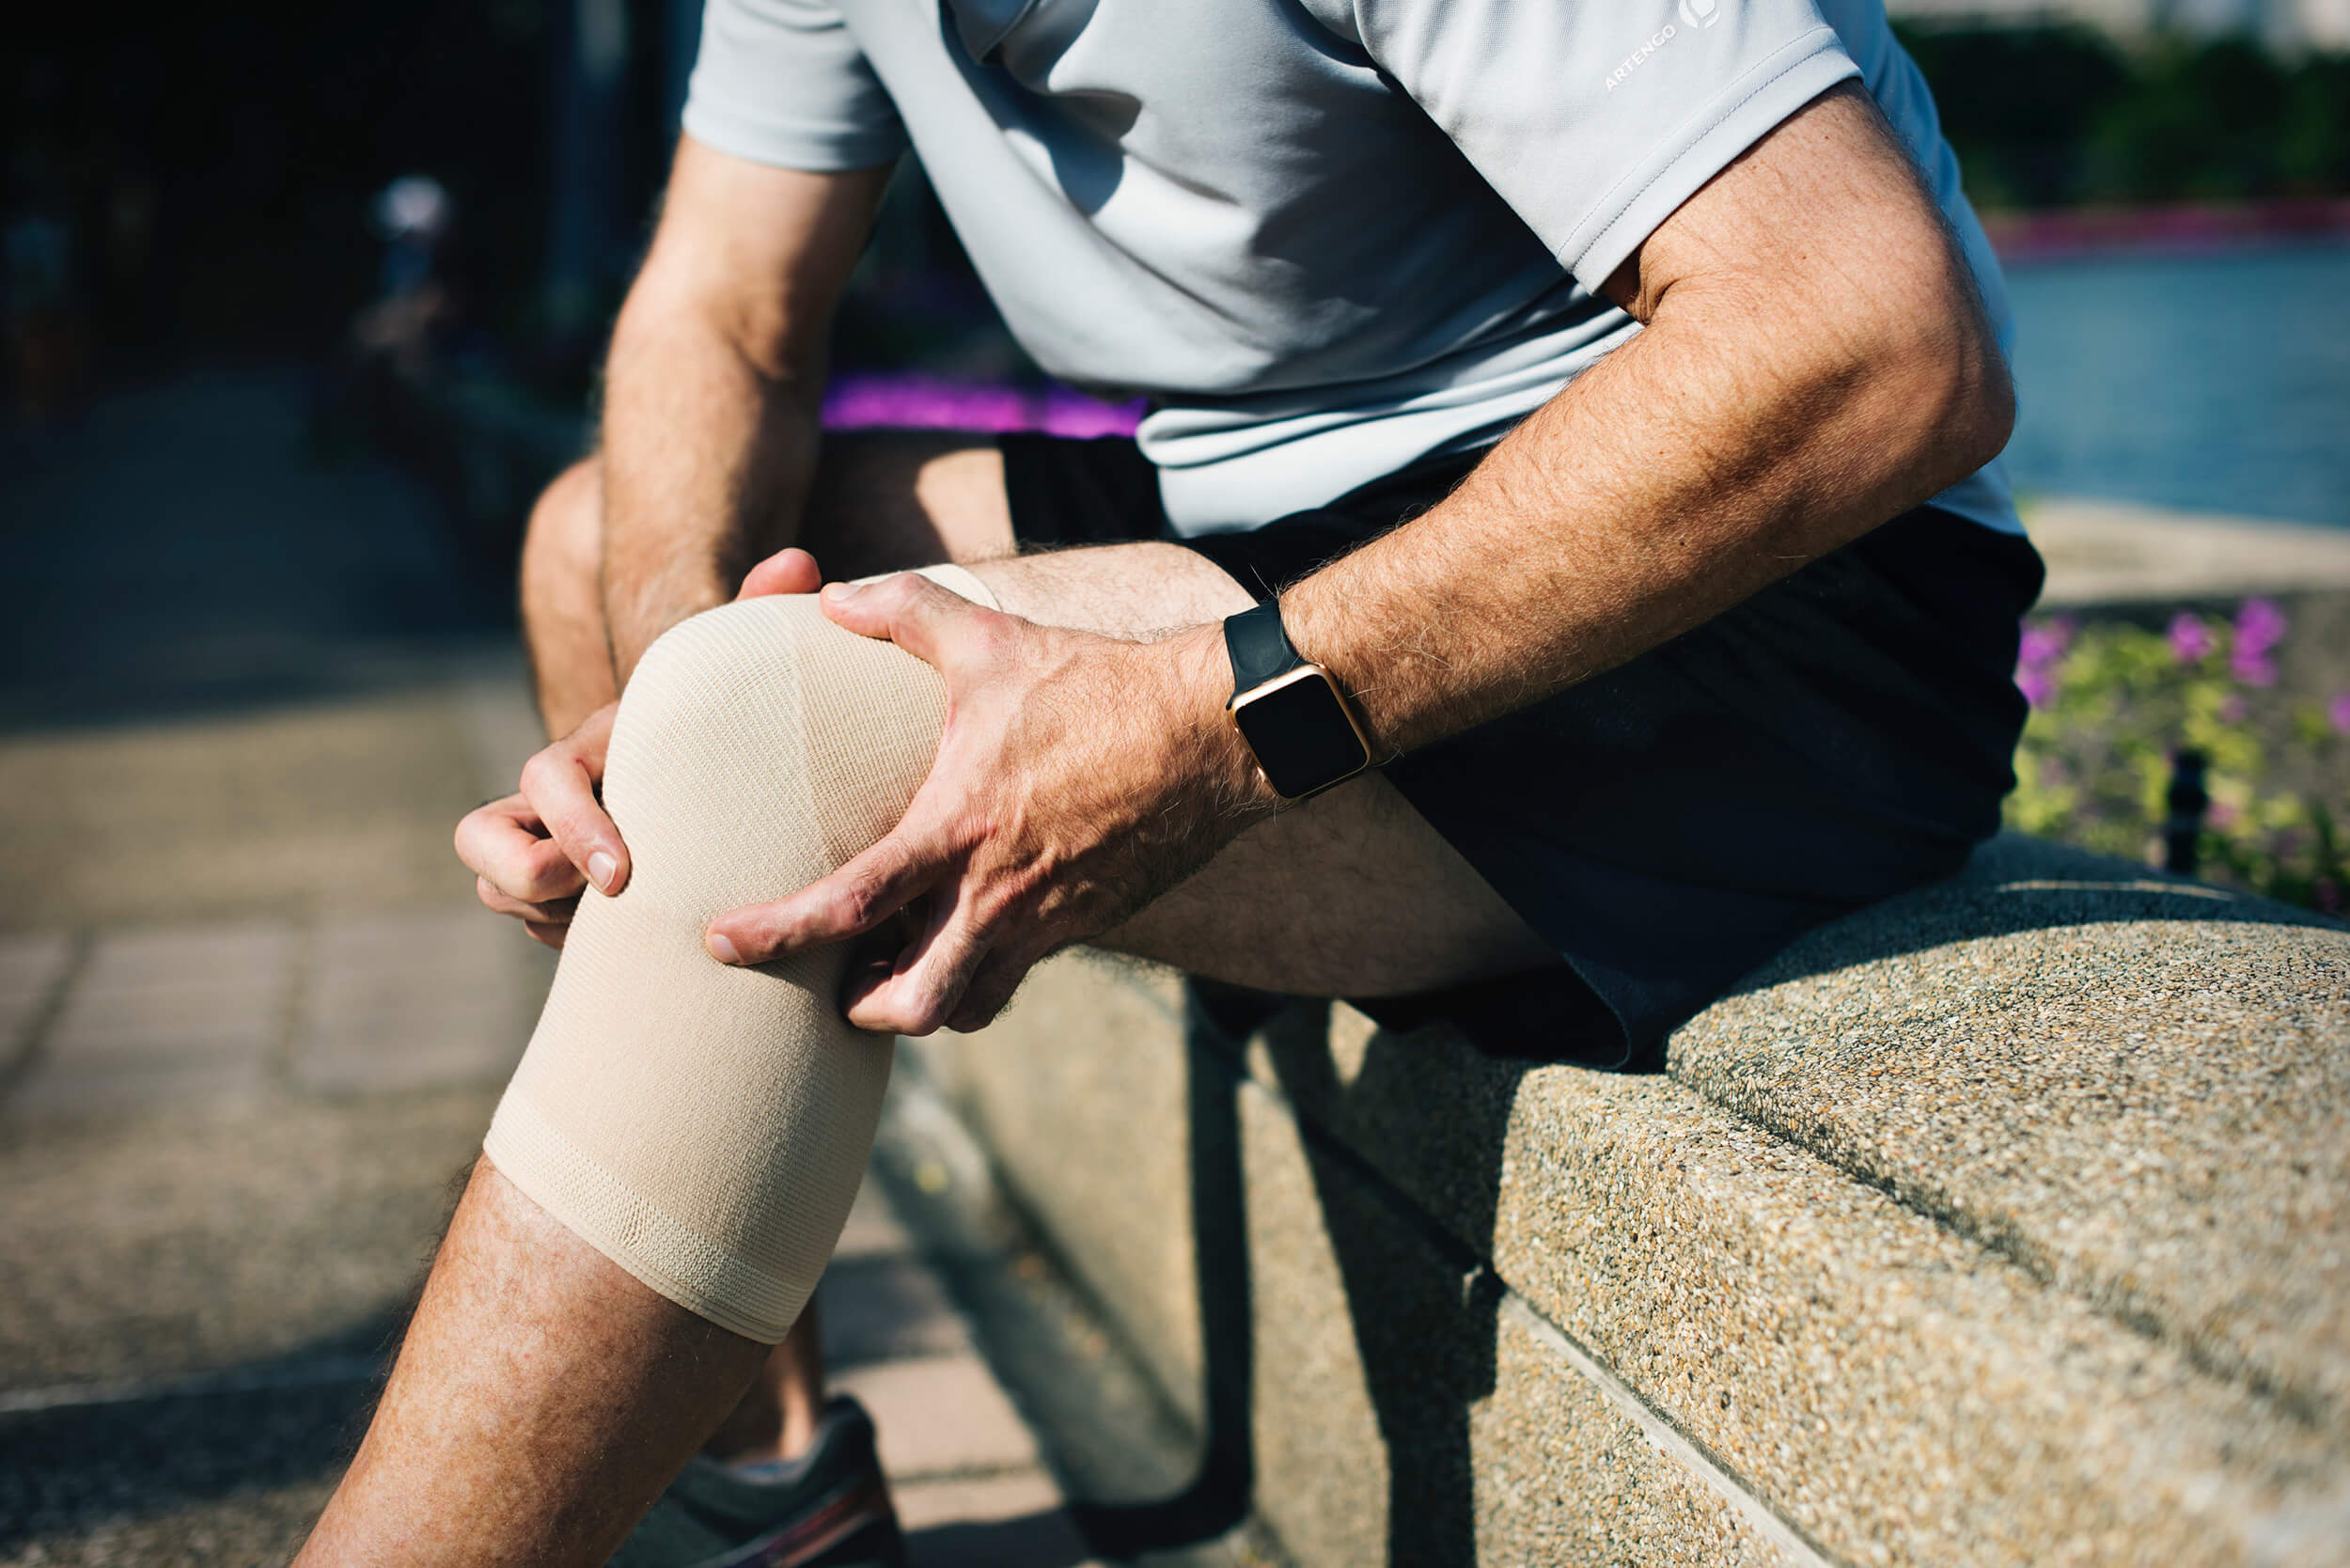 Man Holding Injured Knee